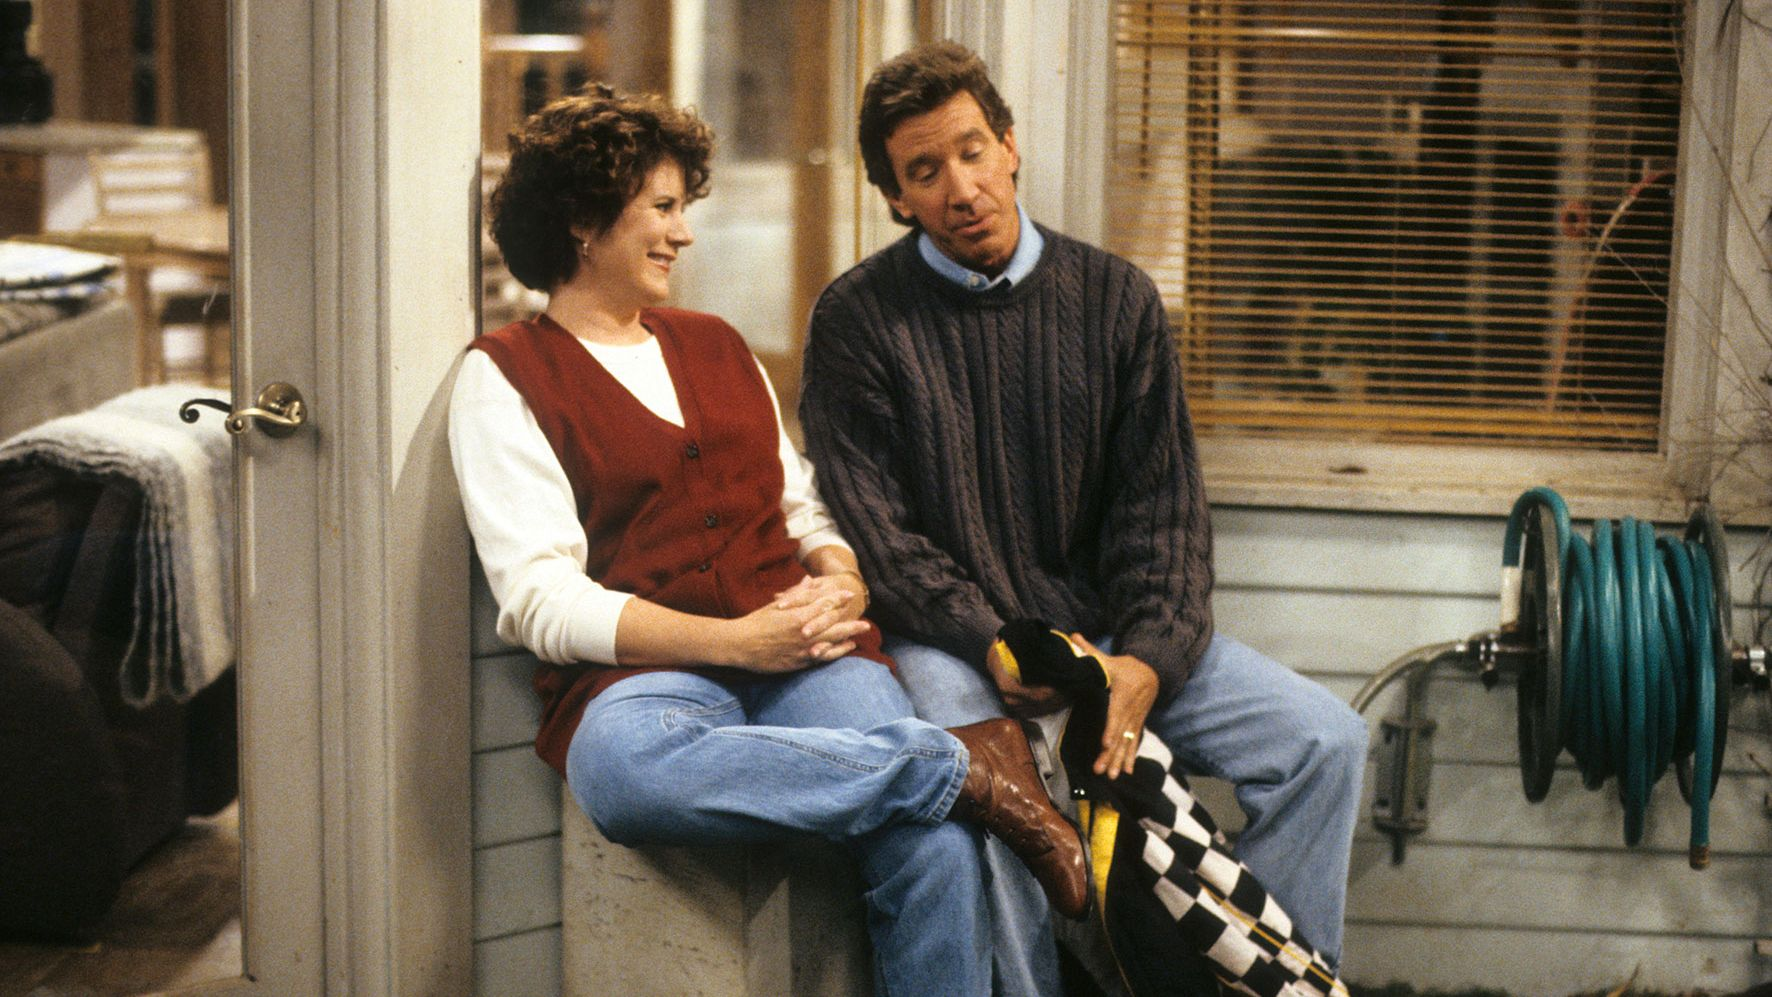 The 'Home Improvement' Creators Are Seeking $40 Million in a Lawsuit Against Disney